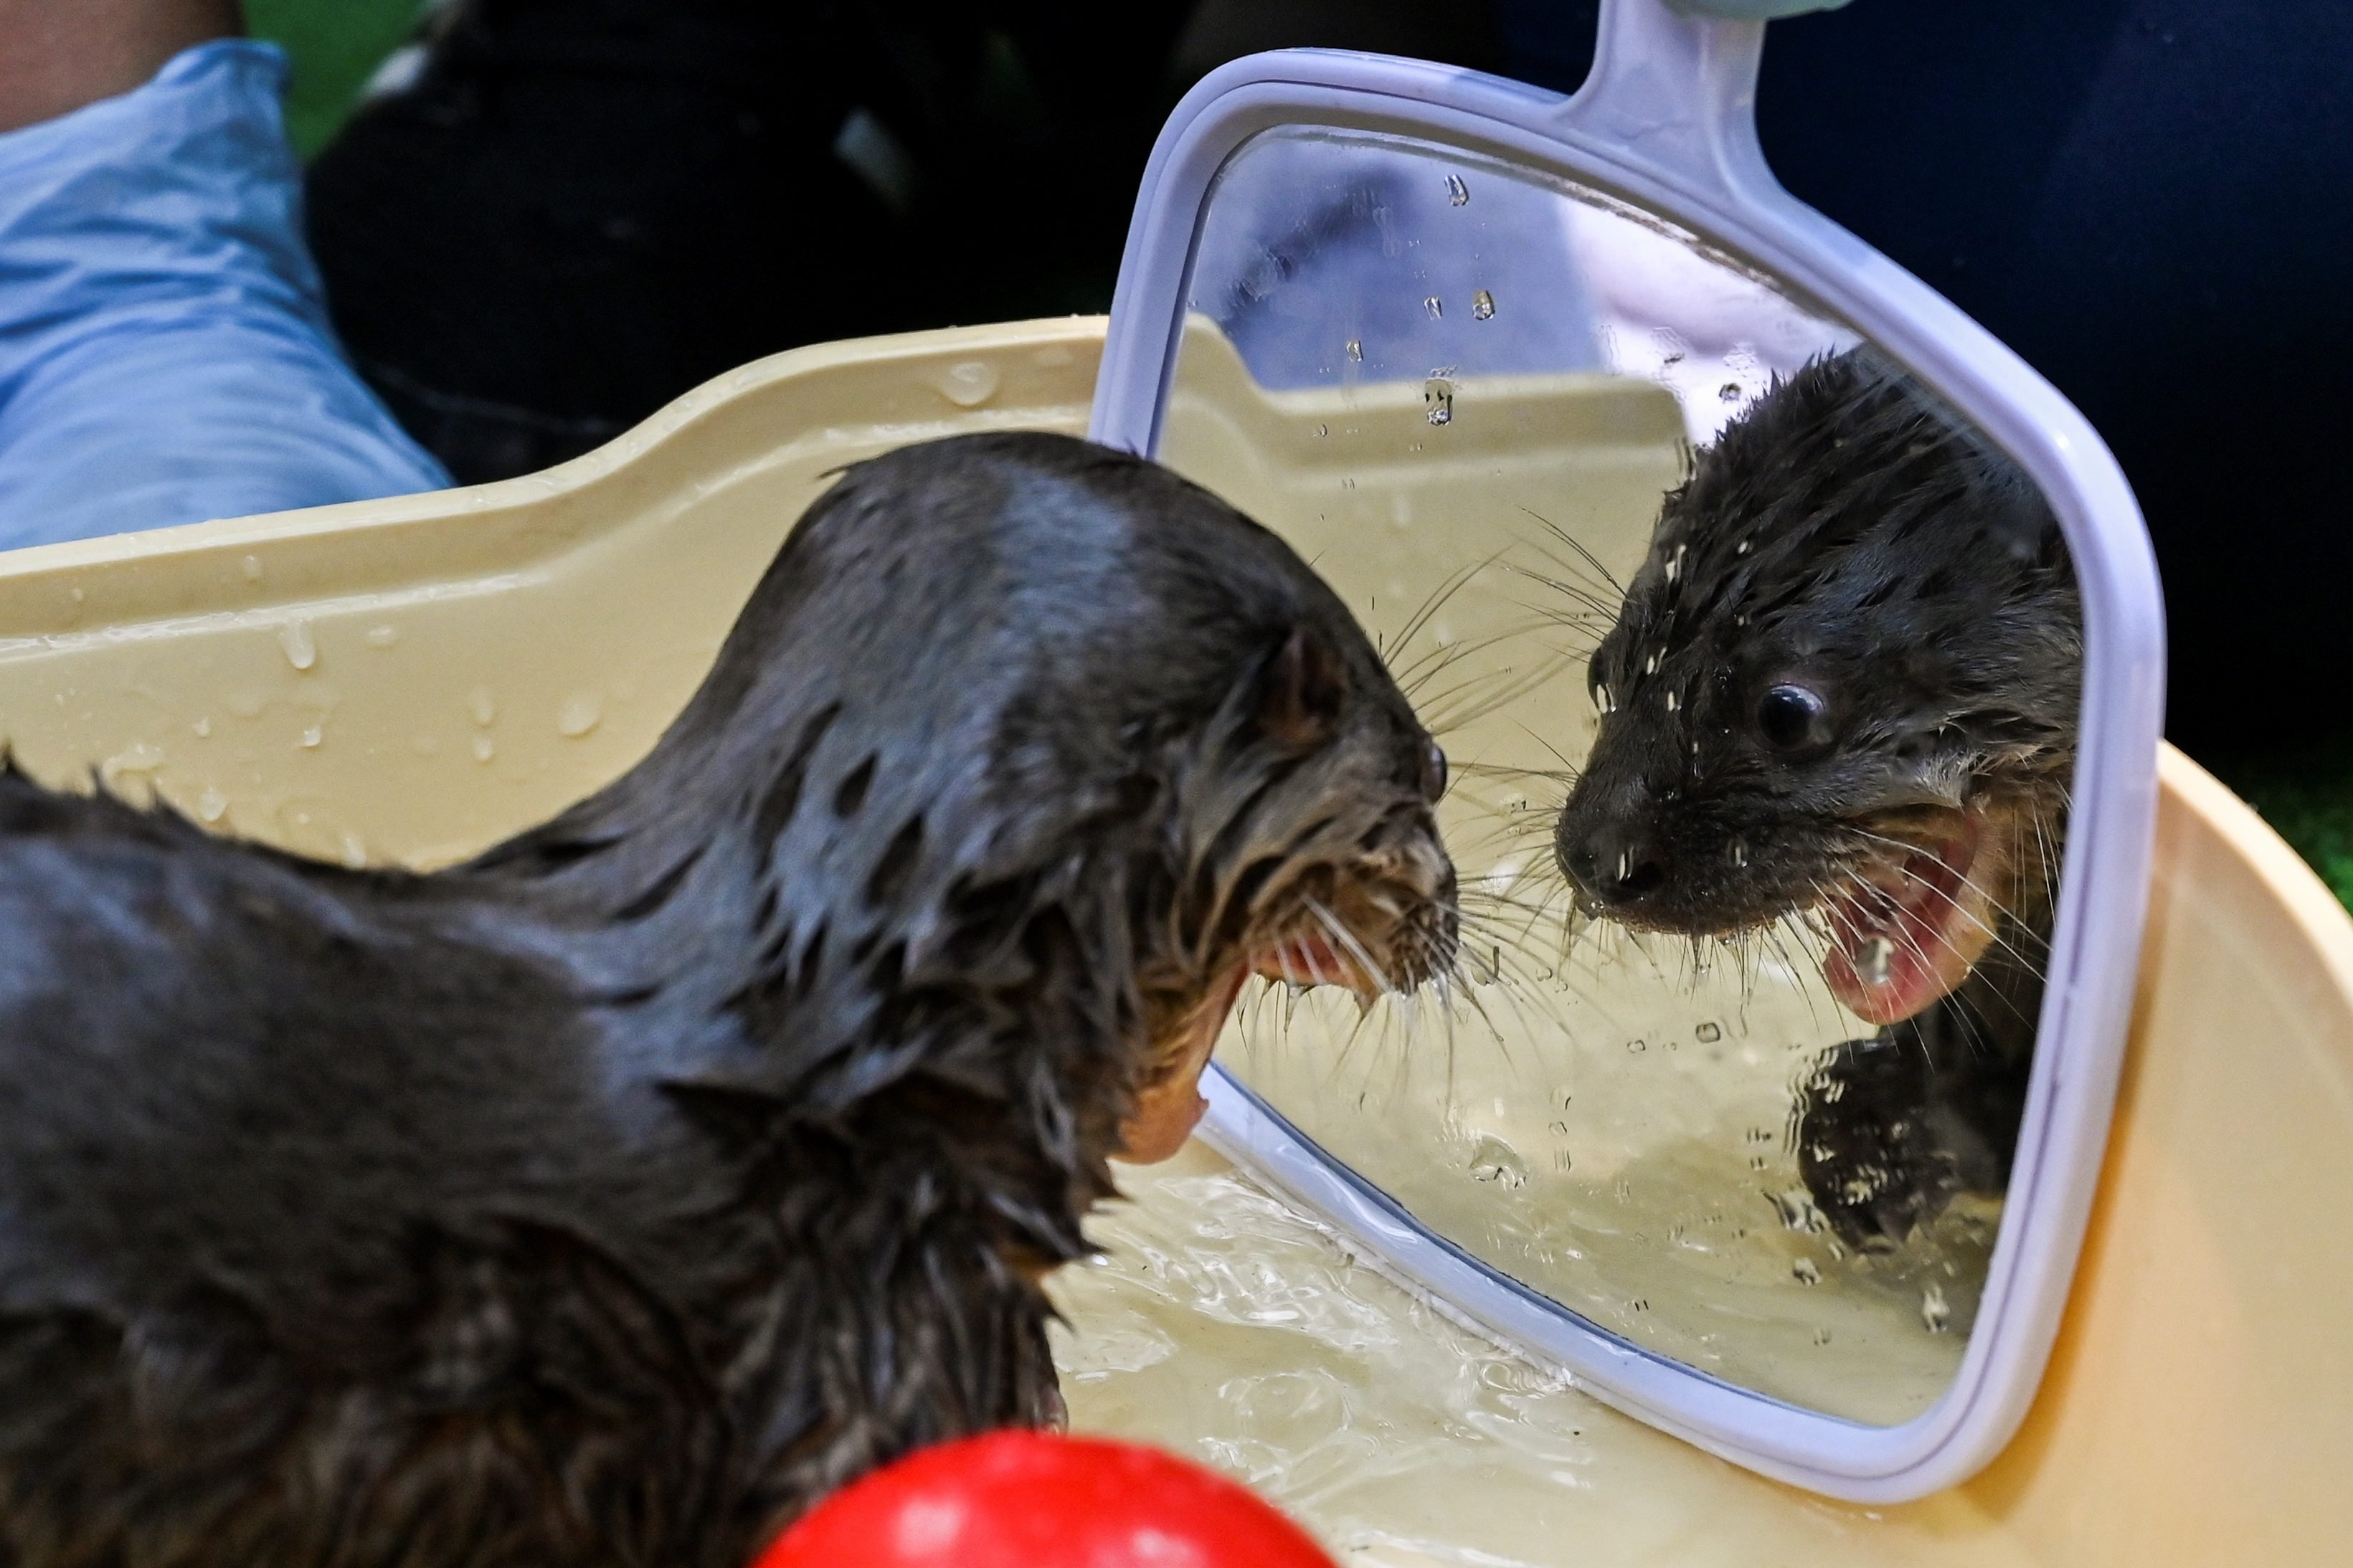 TOPSHOT-COLOMBIA-ANIMALS-OTTER